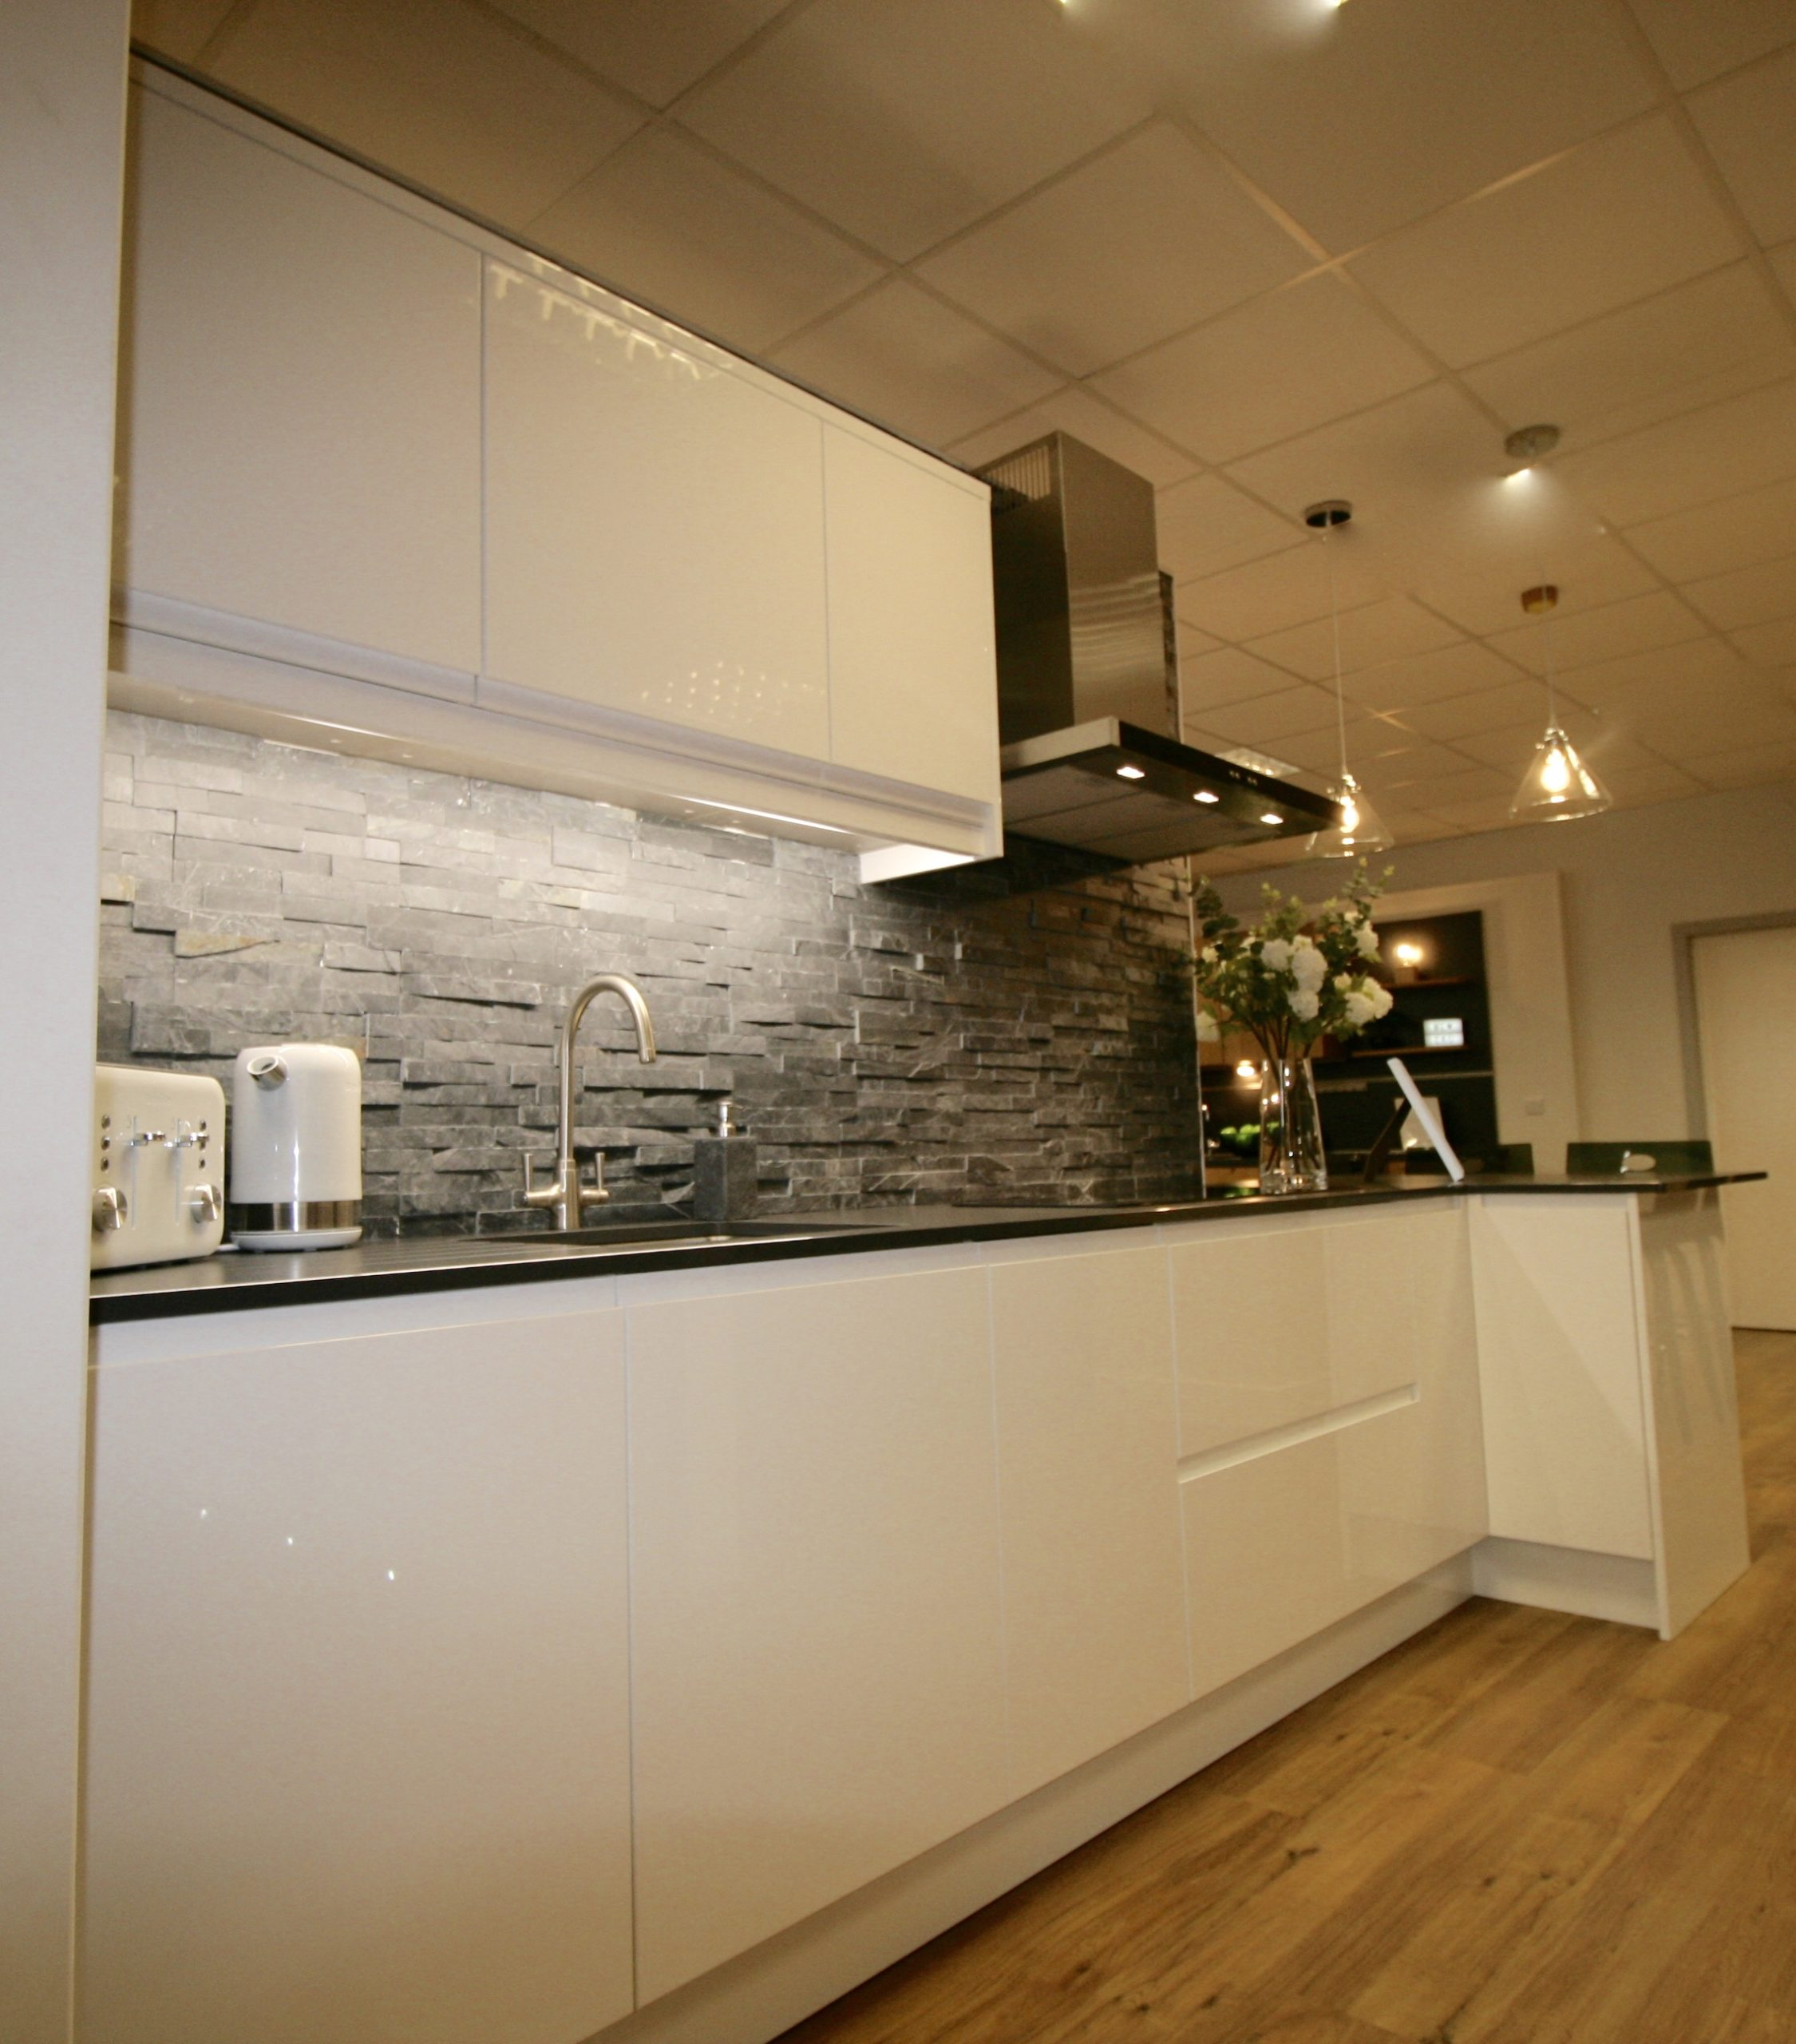 Remo high gloss white handleless kitchen by PWS with slate effect worktop and split face slate tiles.